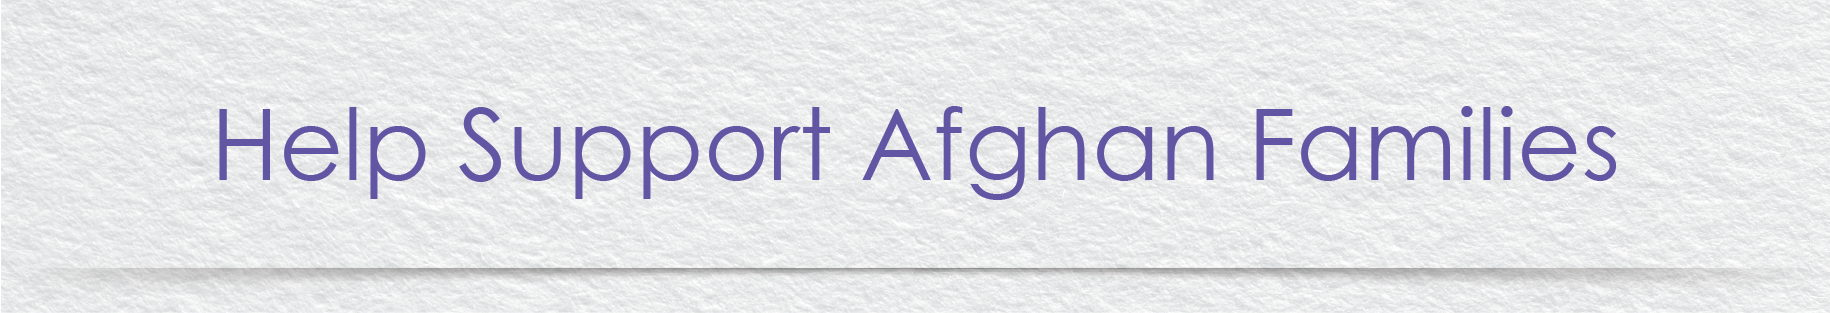 Help Support Afghan Families